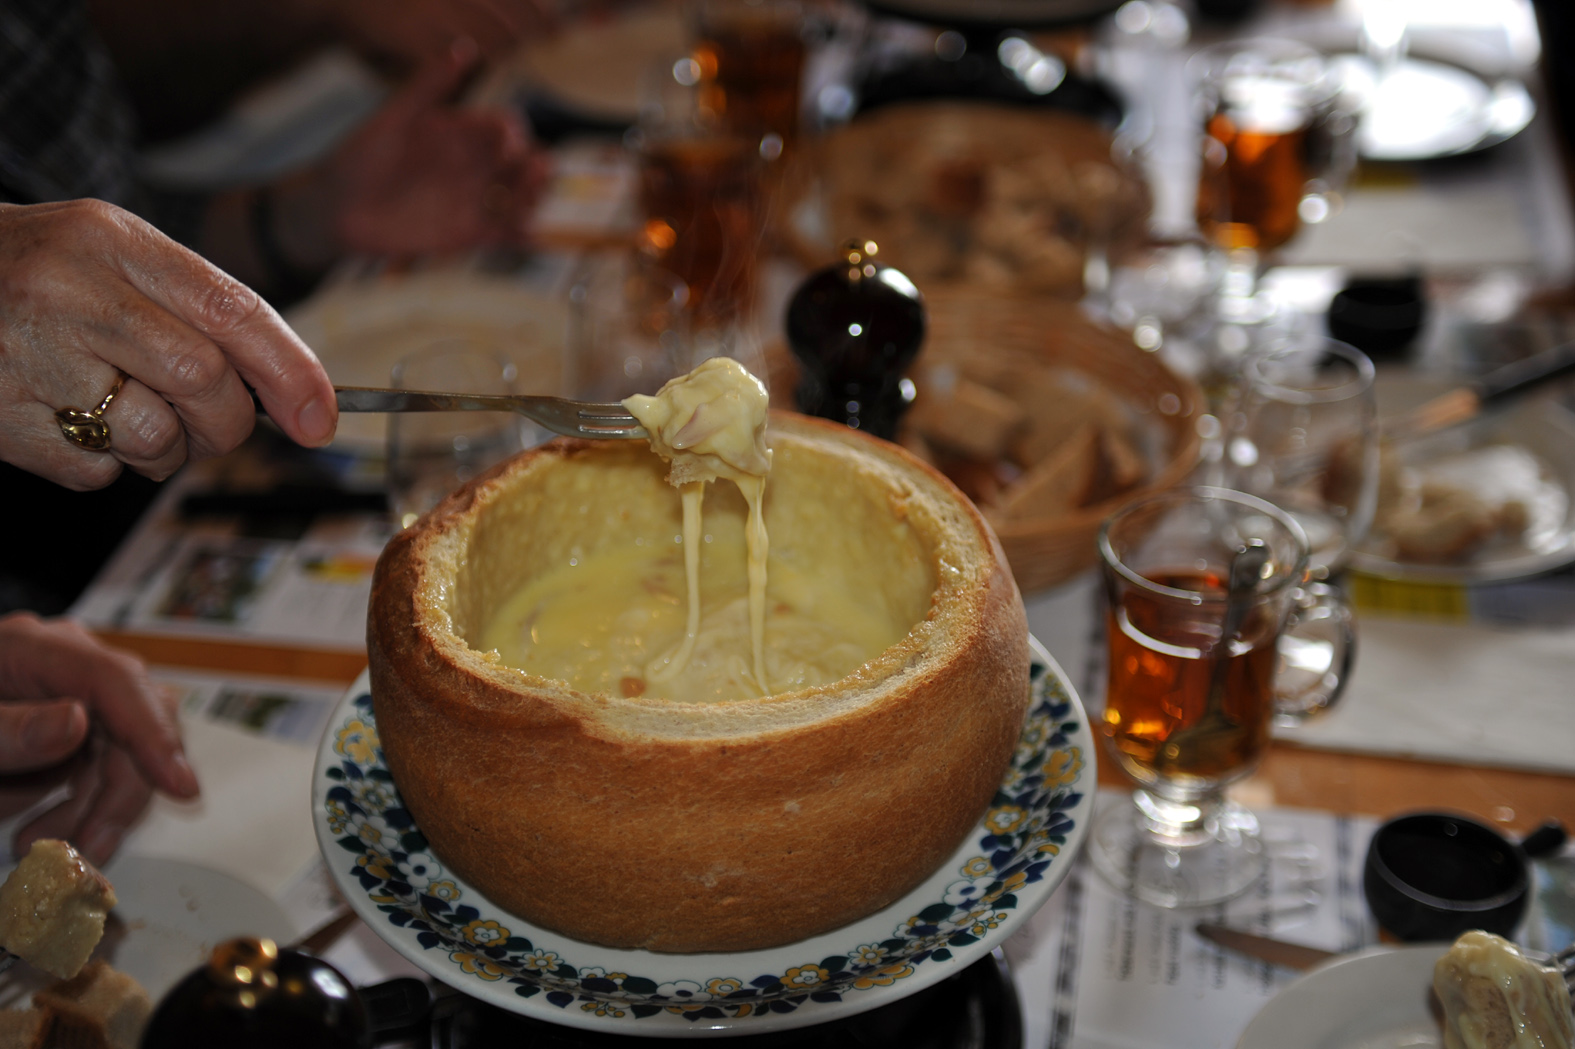 Cheese fondue in bread | © Хрюша / Wikipedia